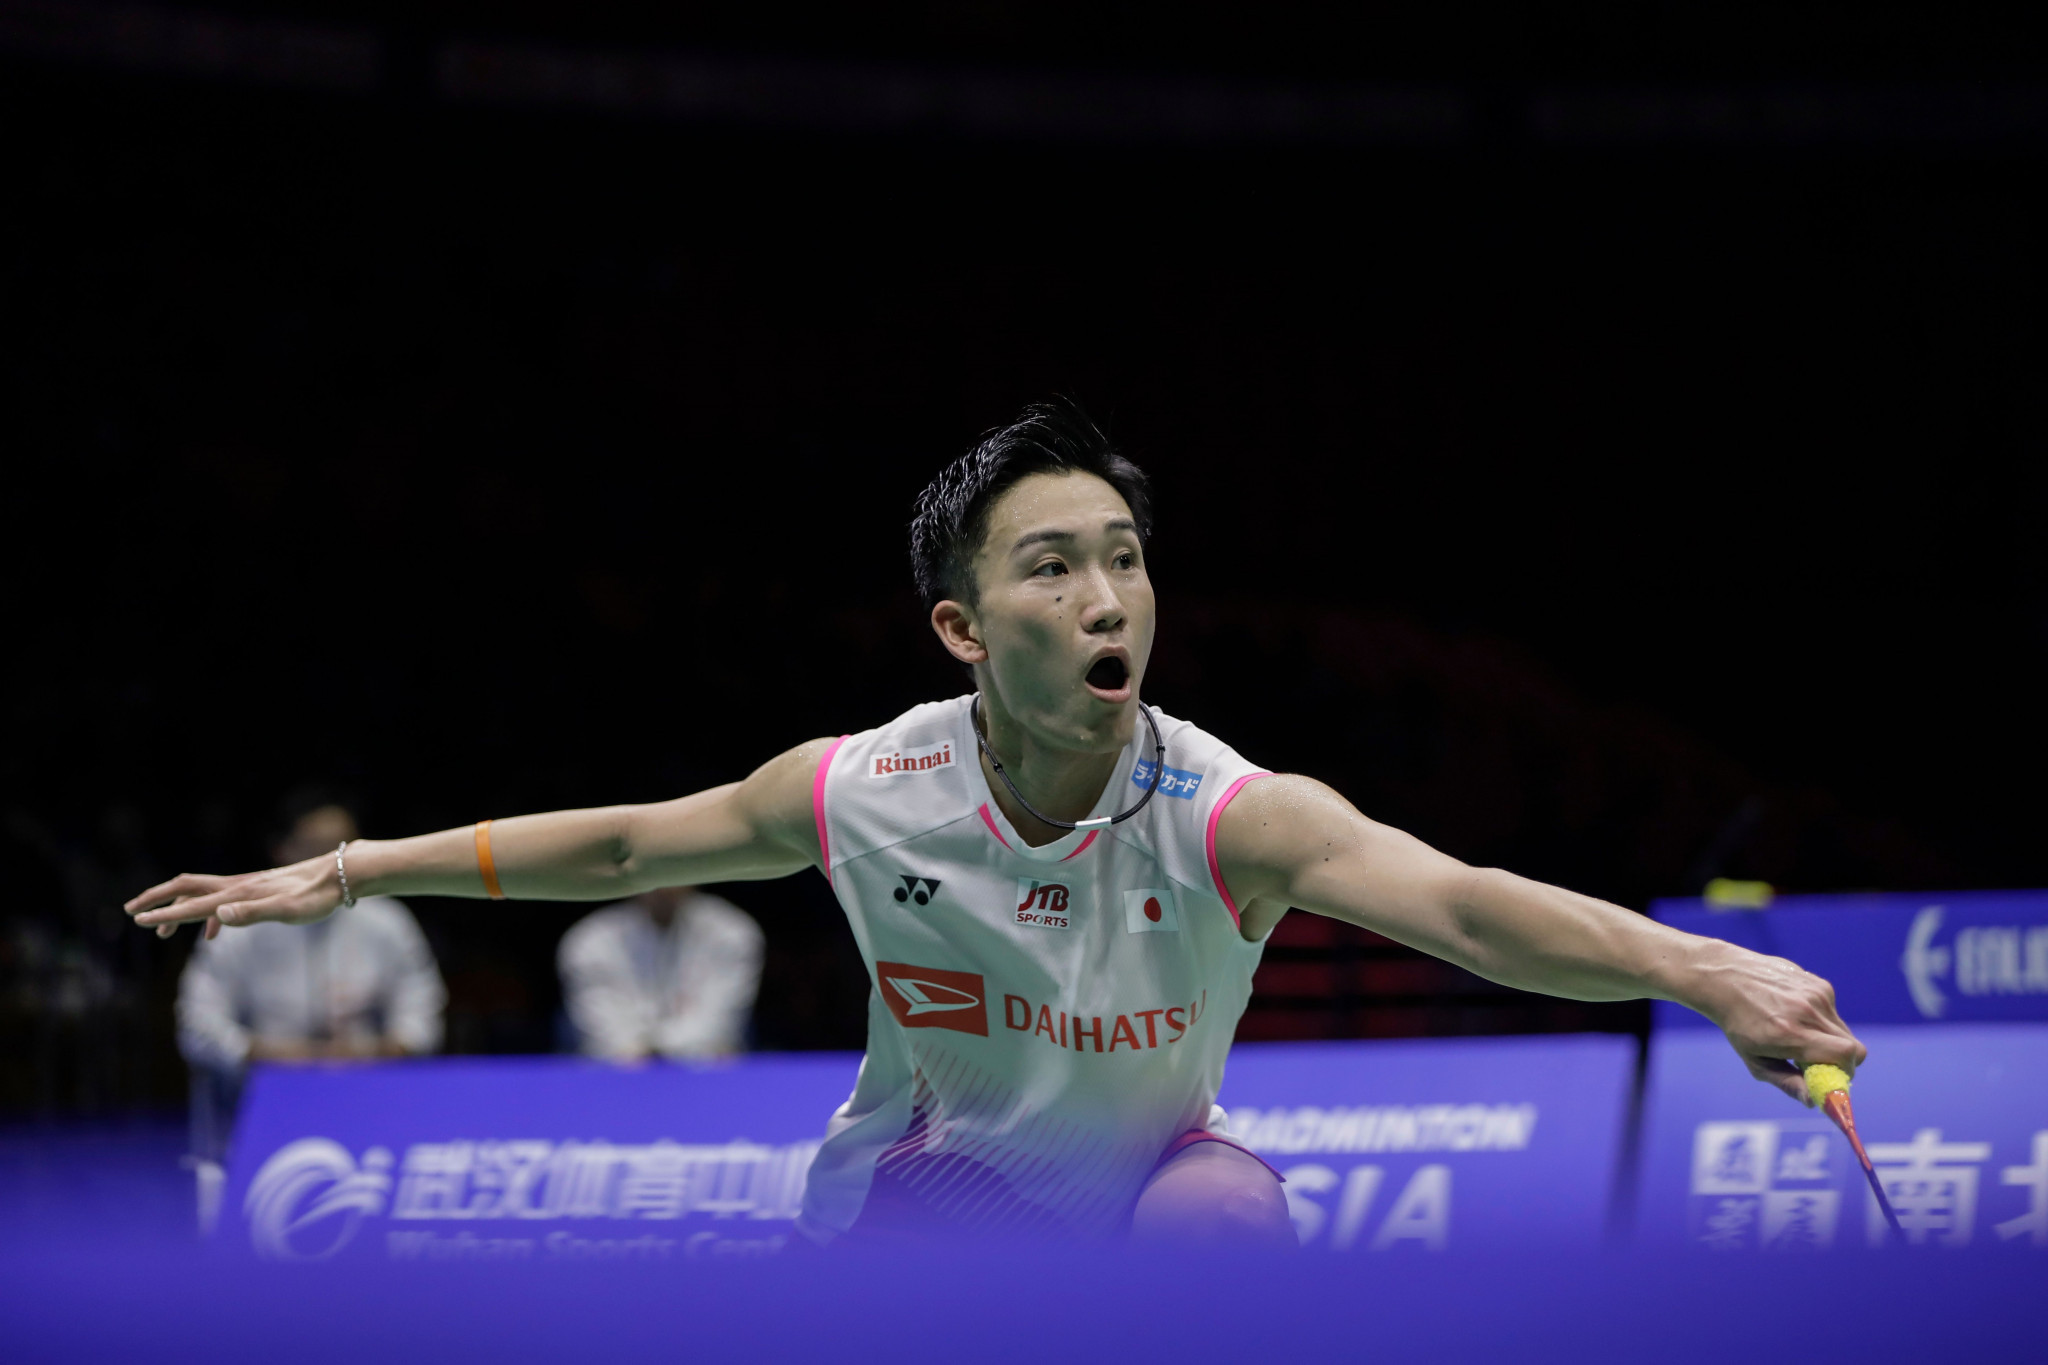 Japan's world champion Kento Momota will lead his team in pursuit of a first Sudirman Cup win in China starting from tomorrow ©Getty Images